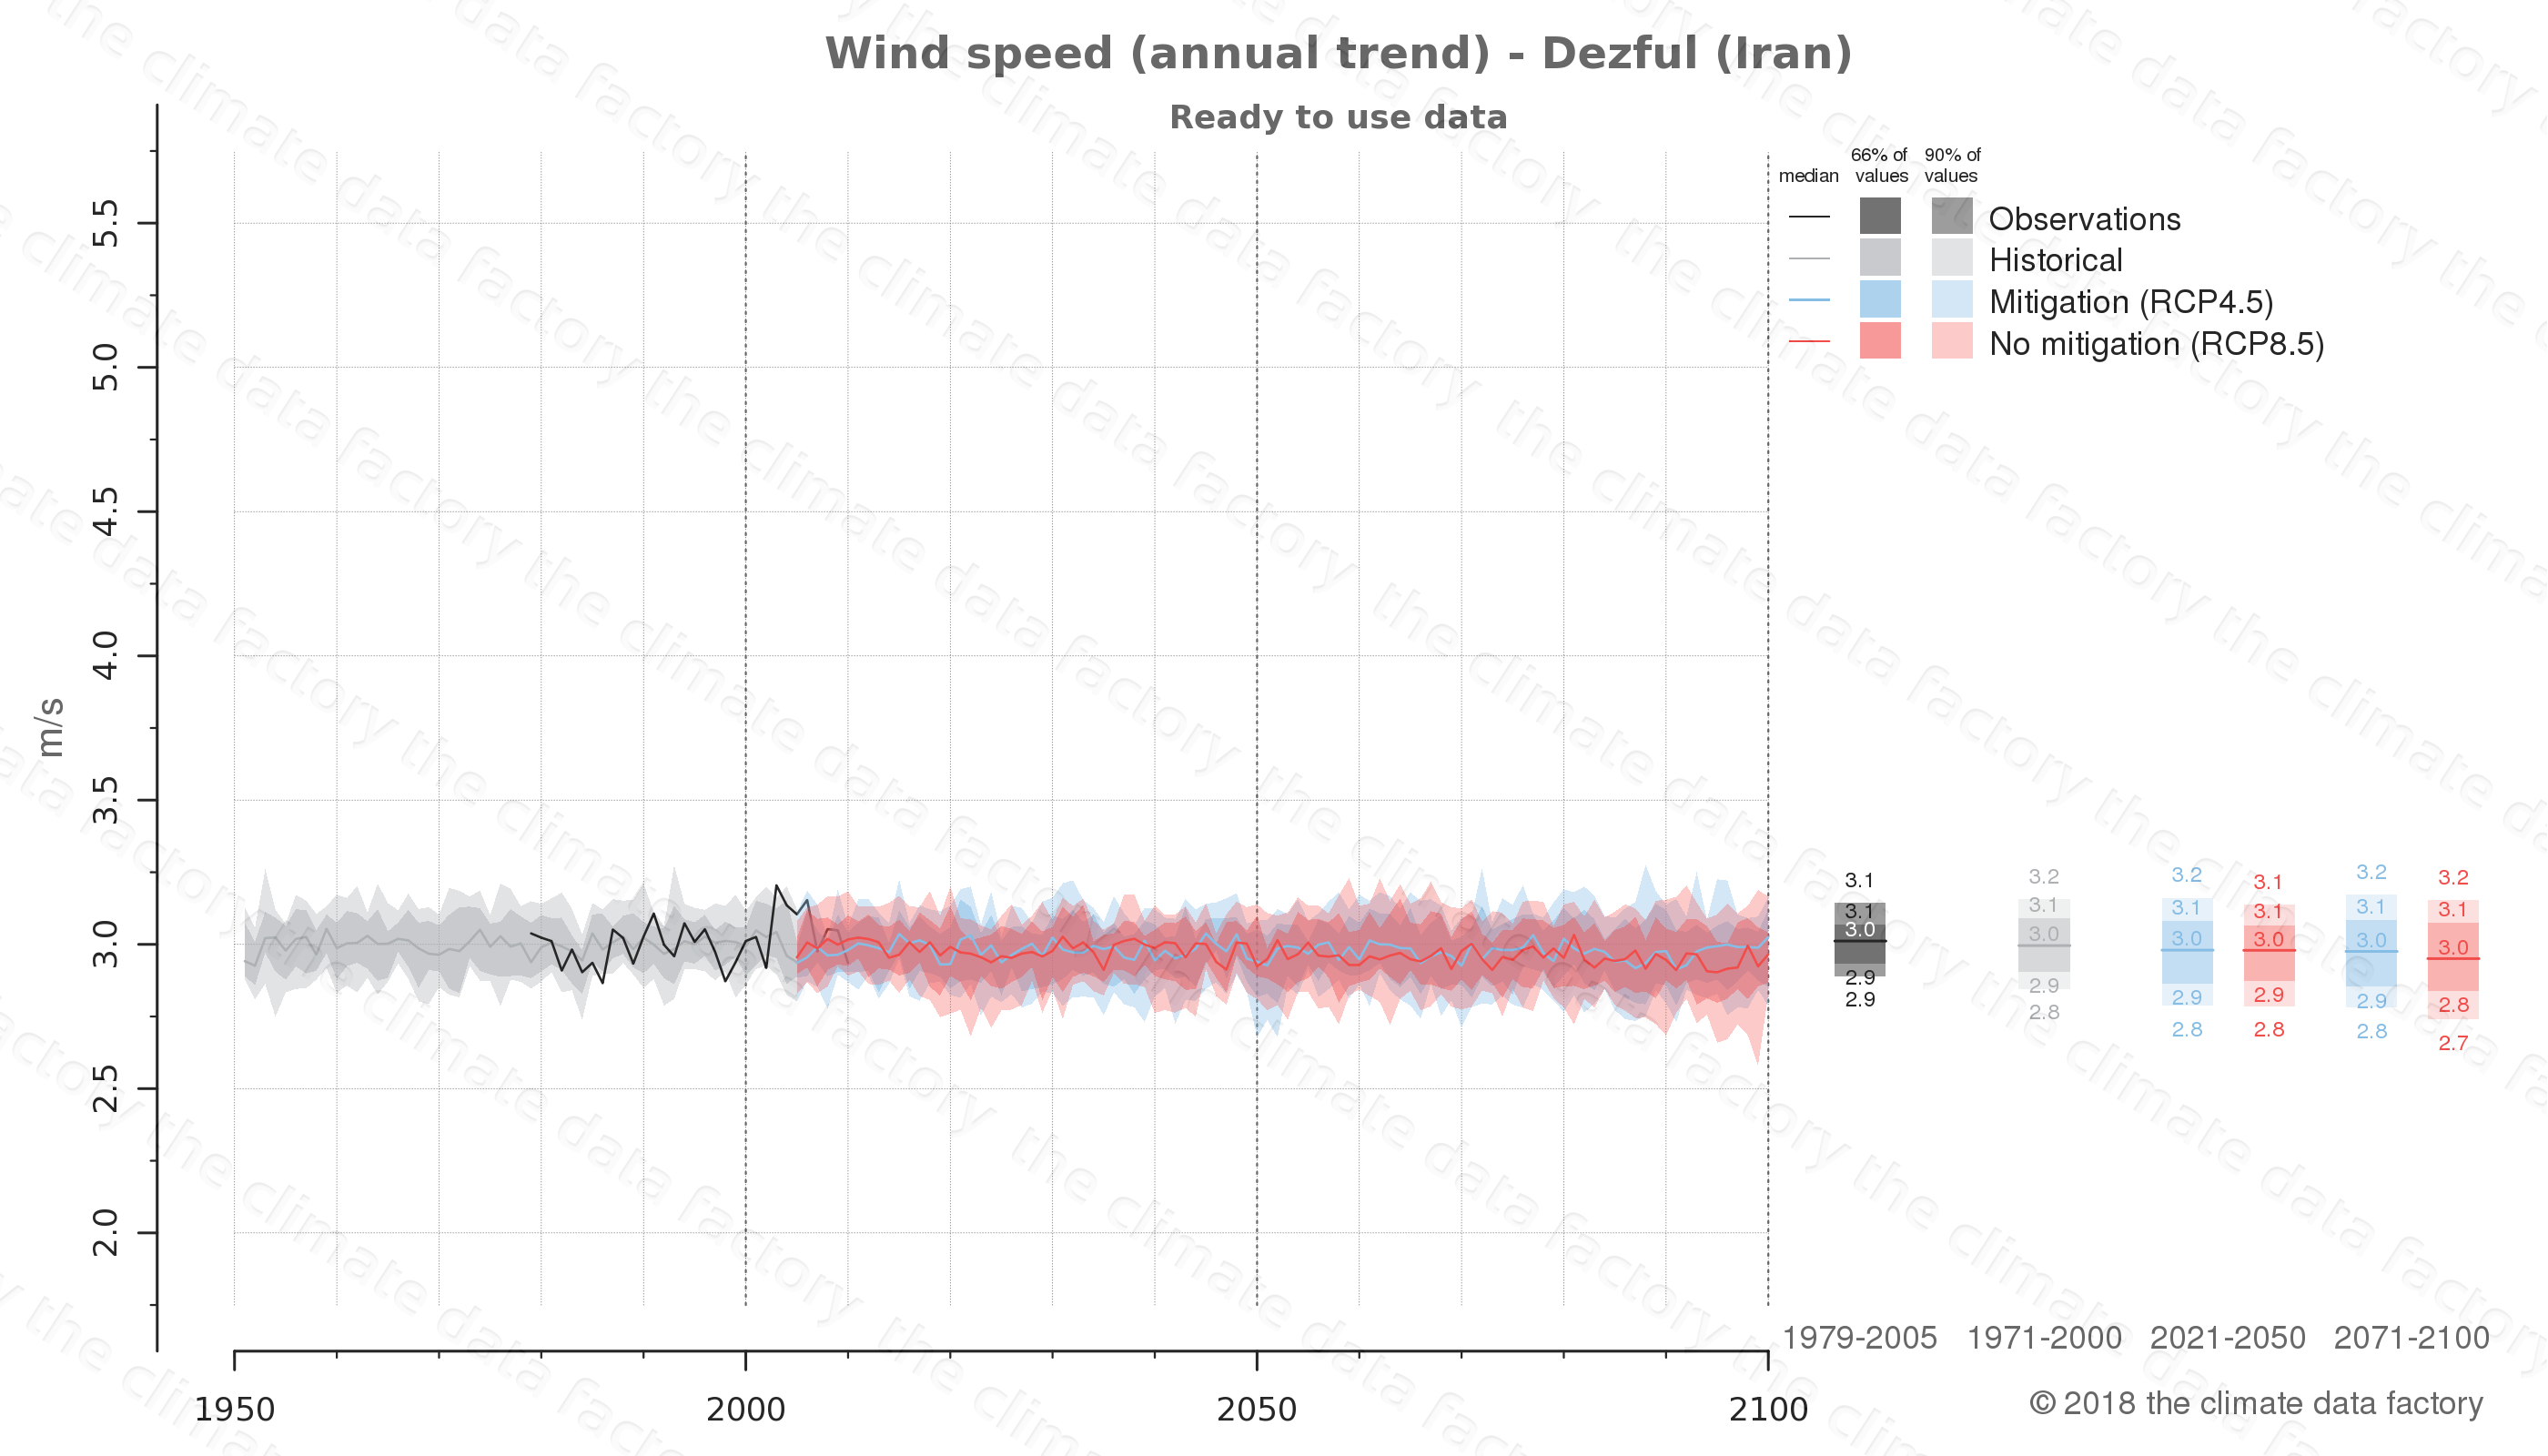 climate change data policy adaptation climate graph city data wind-speed dezful iran